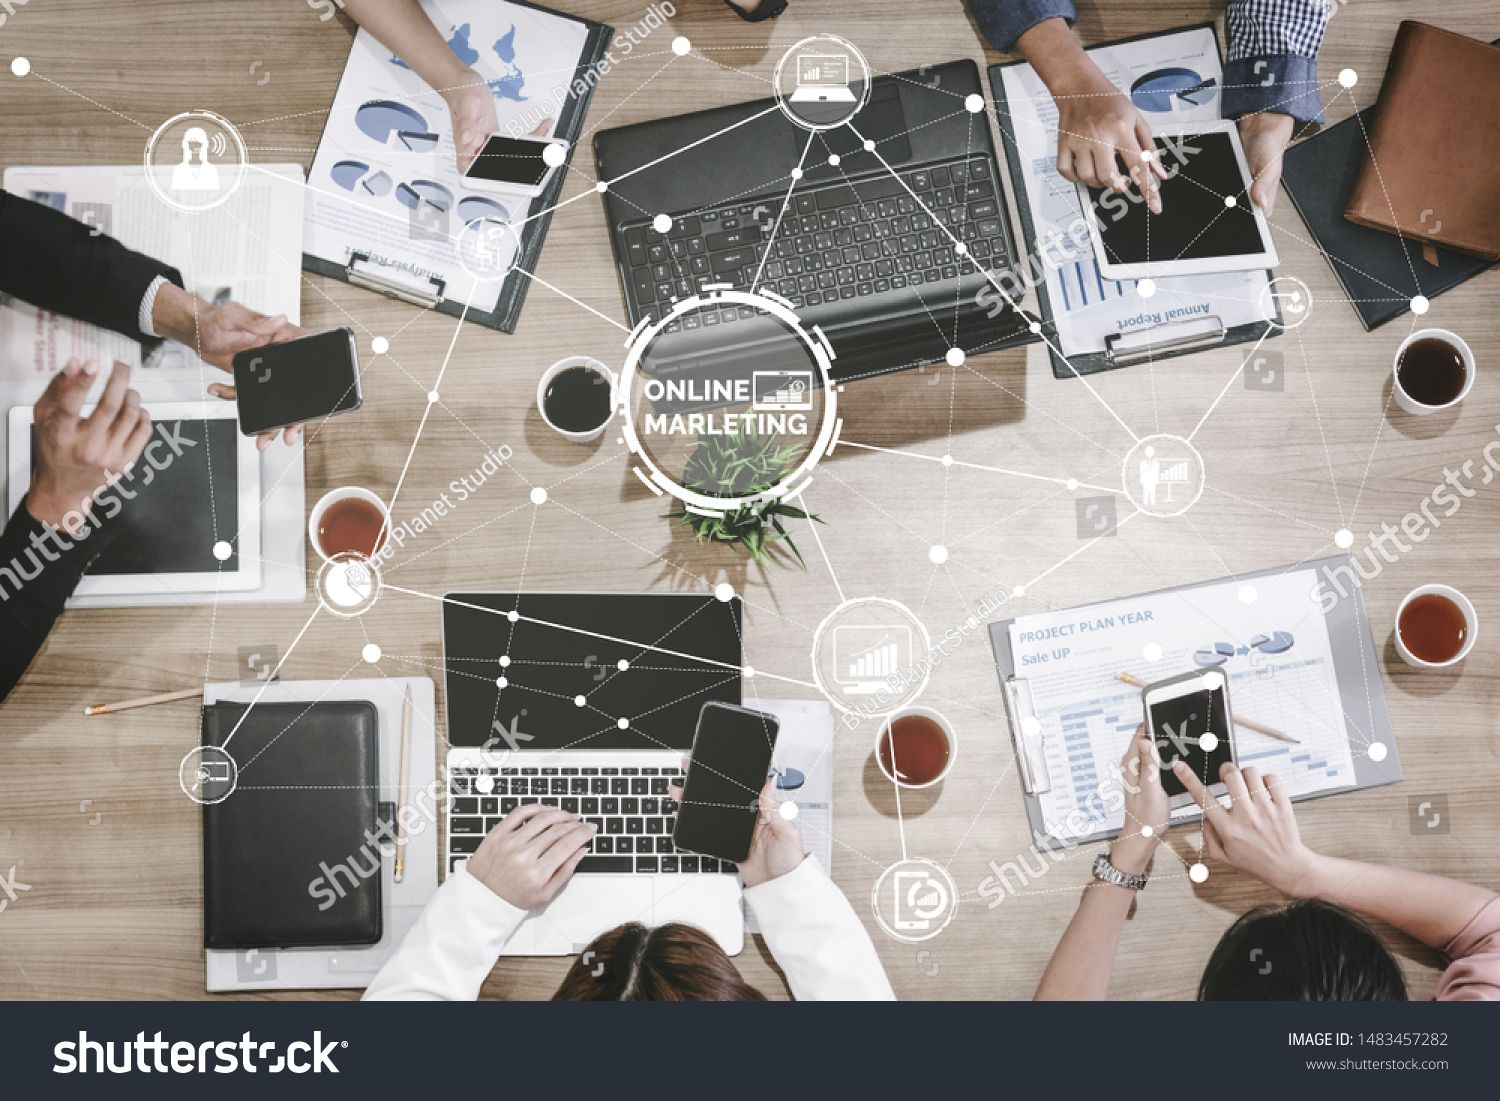 Digital Marketing Technology Solution for Online Business Concept  Graphic interface showing analytic diagram of online market promotion strategy on digital advertising p...